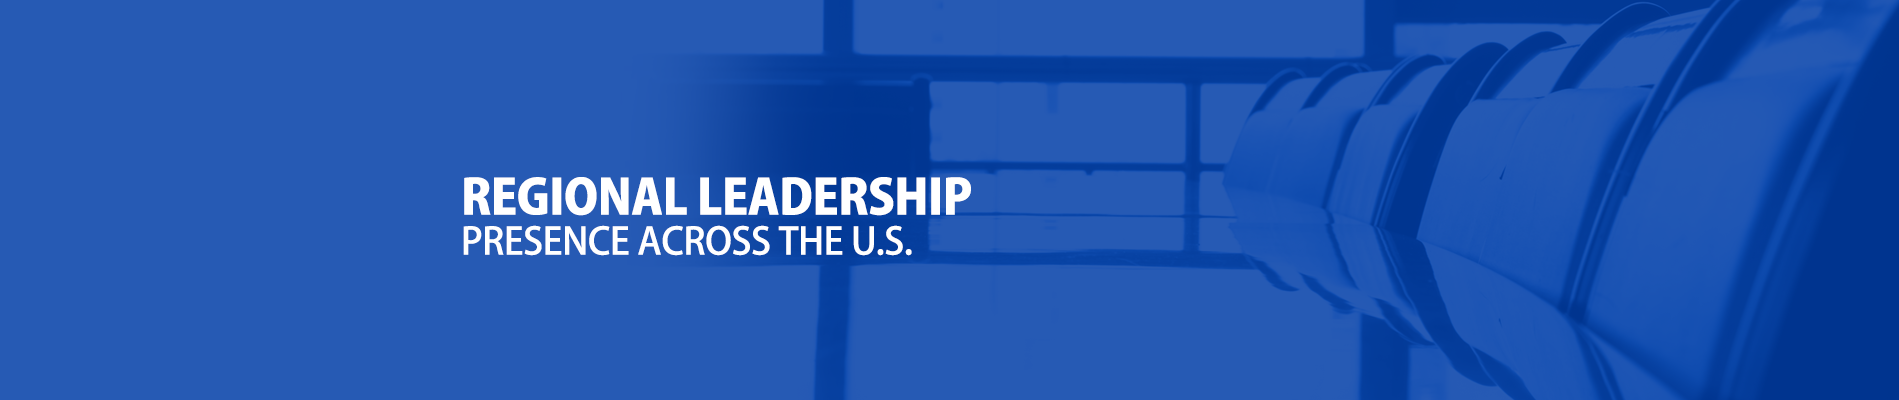 Blue Regional Leadership, presence across the US. image Banner